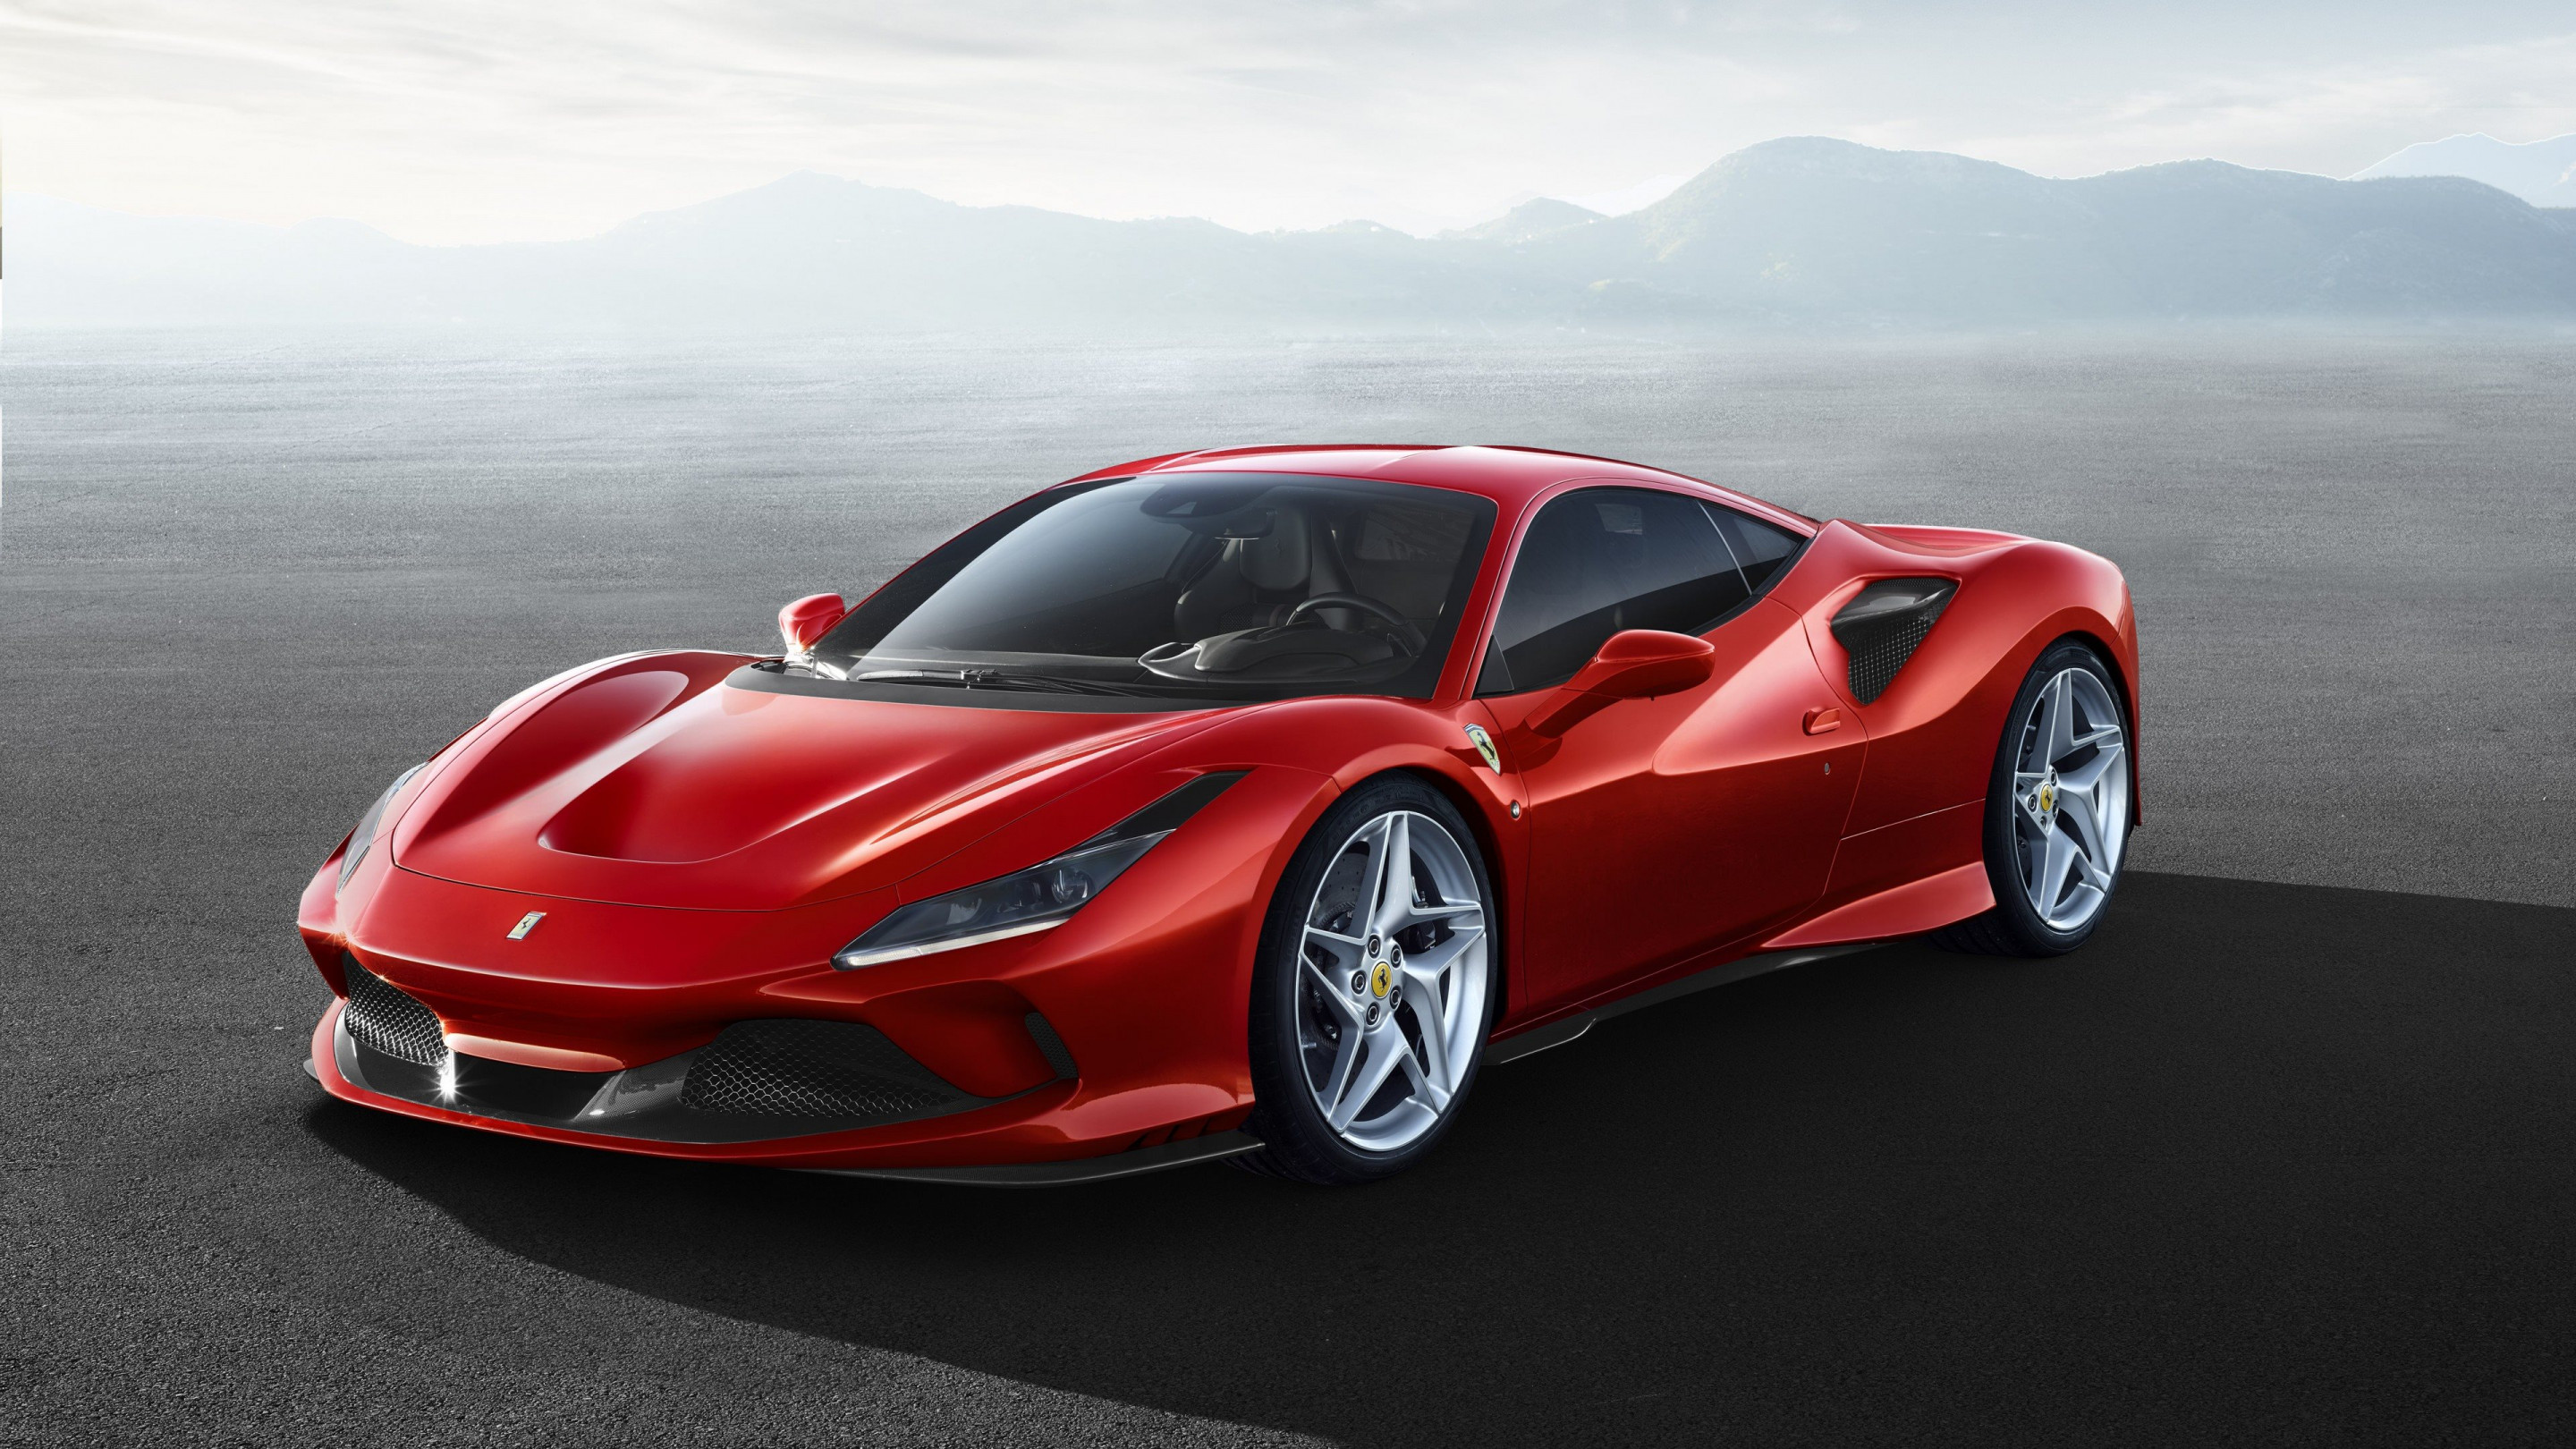 Ferrari F8 Tributo wallpaper 2880x1620